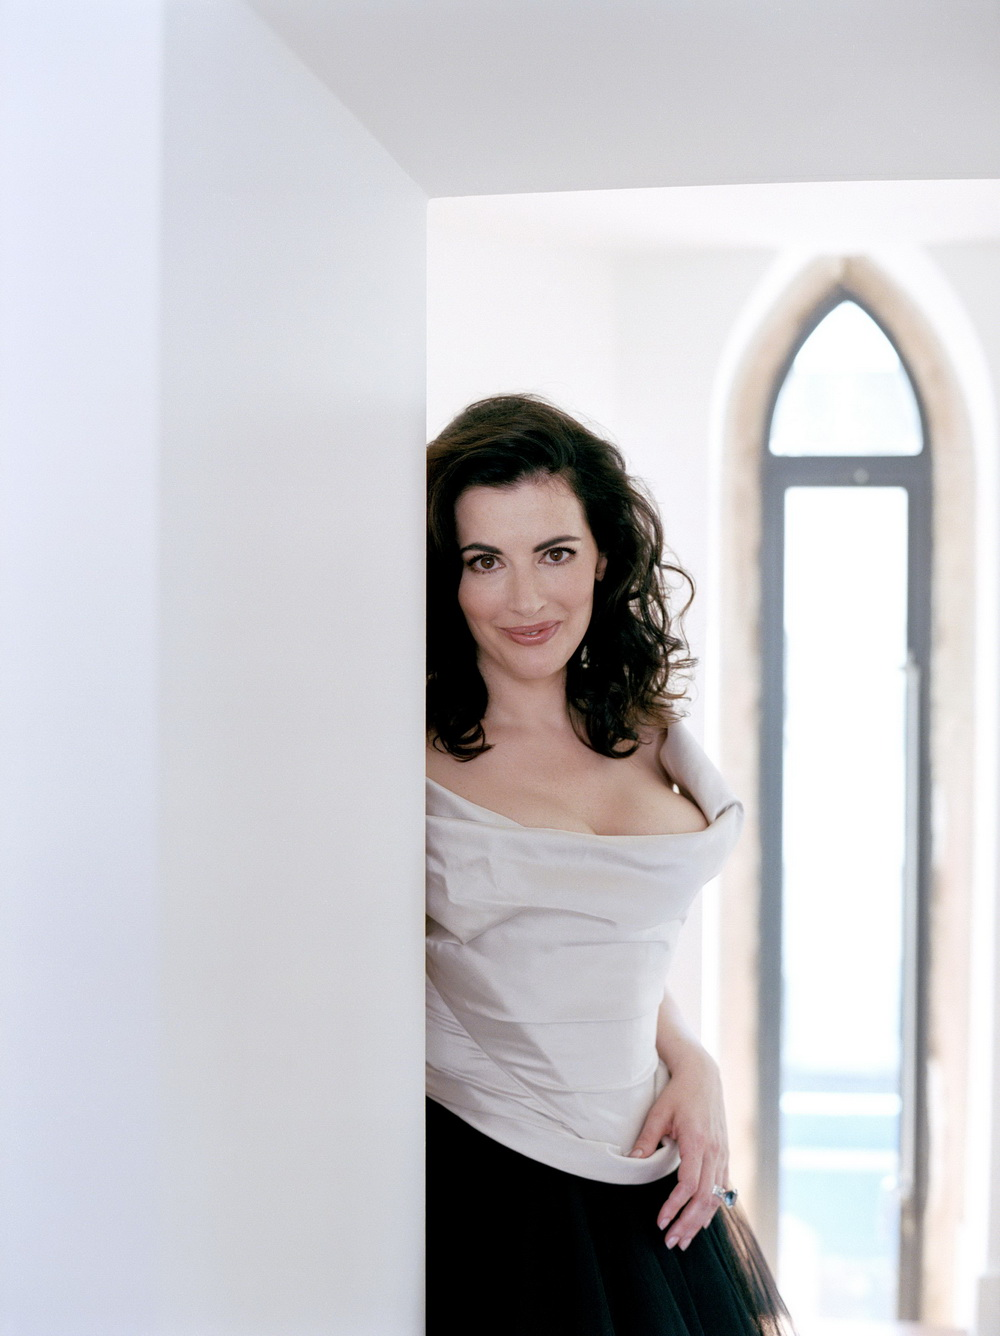 nigella lawsons femininity Nigella lawson is an attractive woman of many achievements but her too-full figure is more likely to inspire exercise than emulation the starkly divergent outcomes of the two british surveys is probably due to the wording of the question.